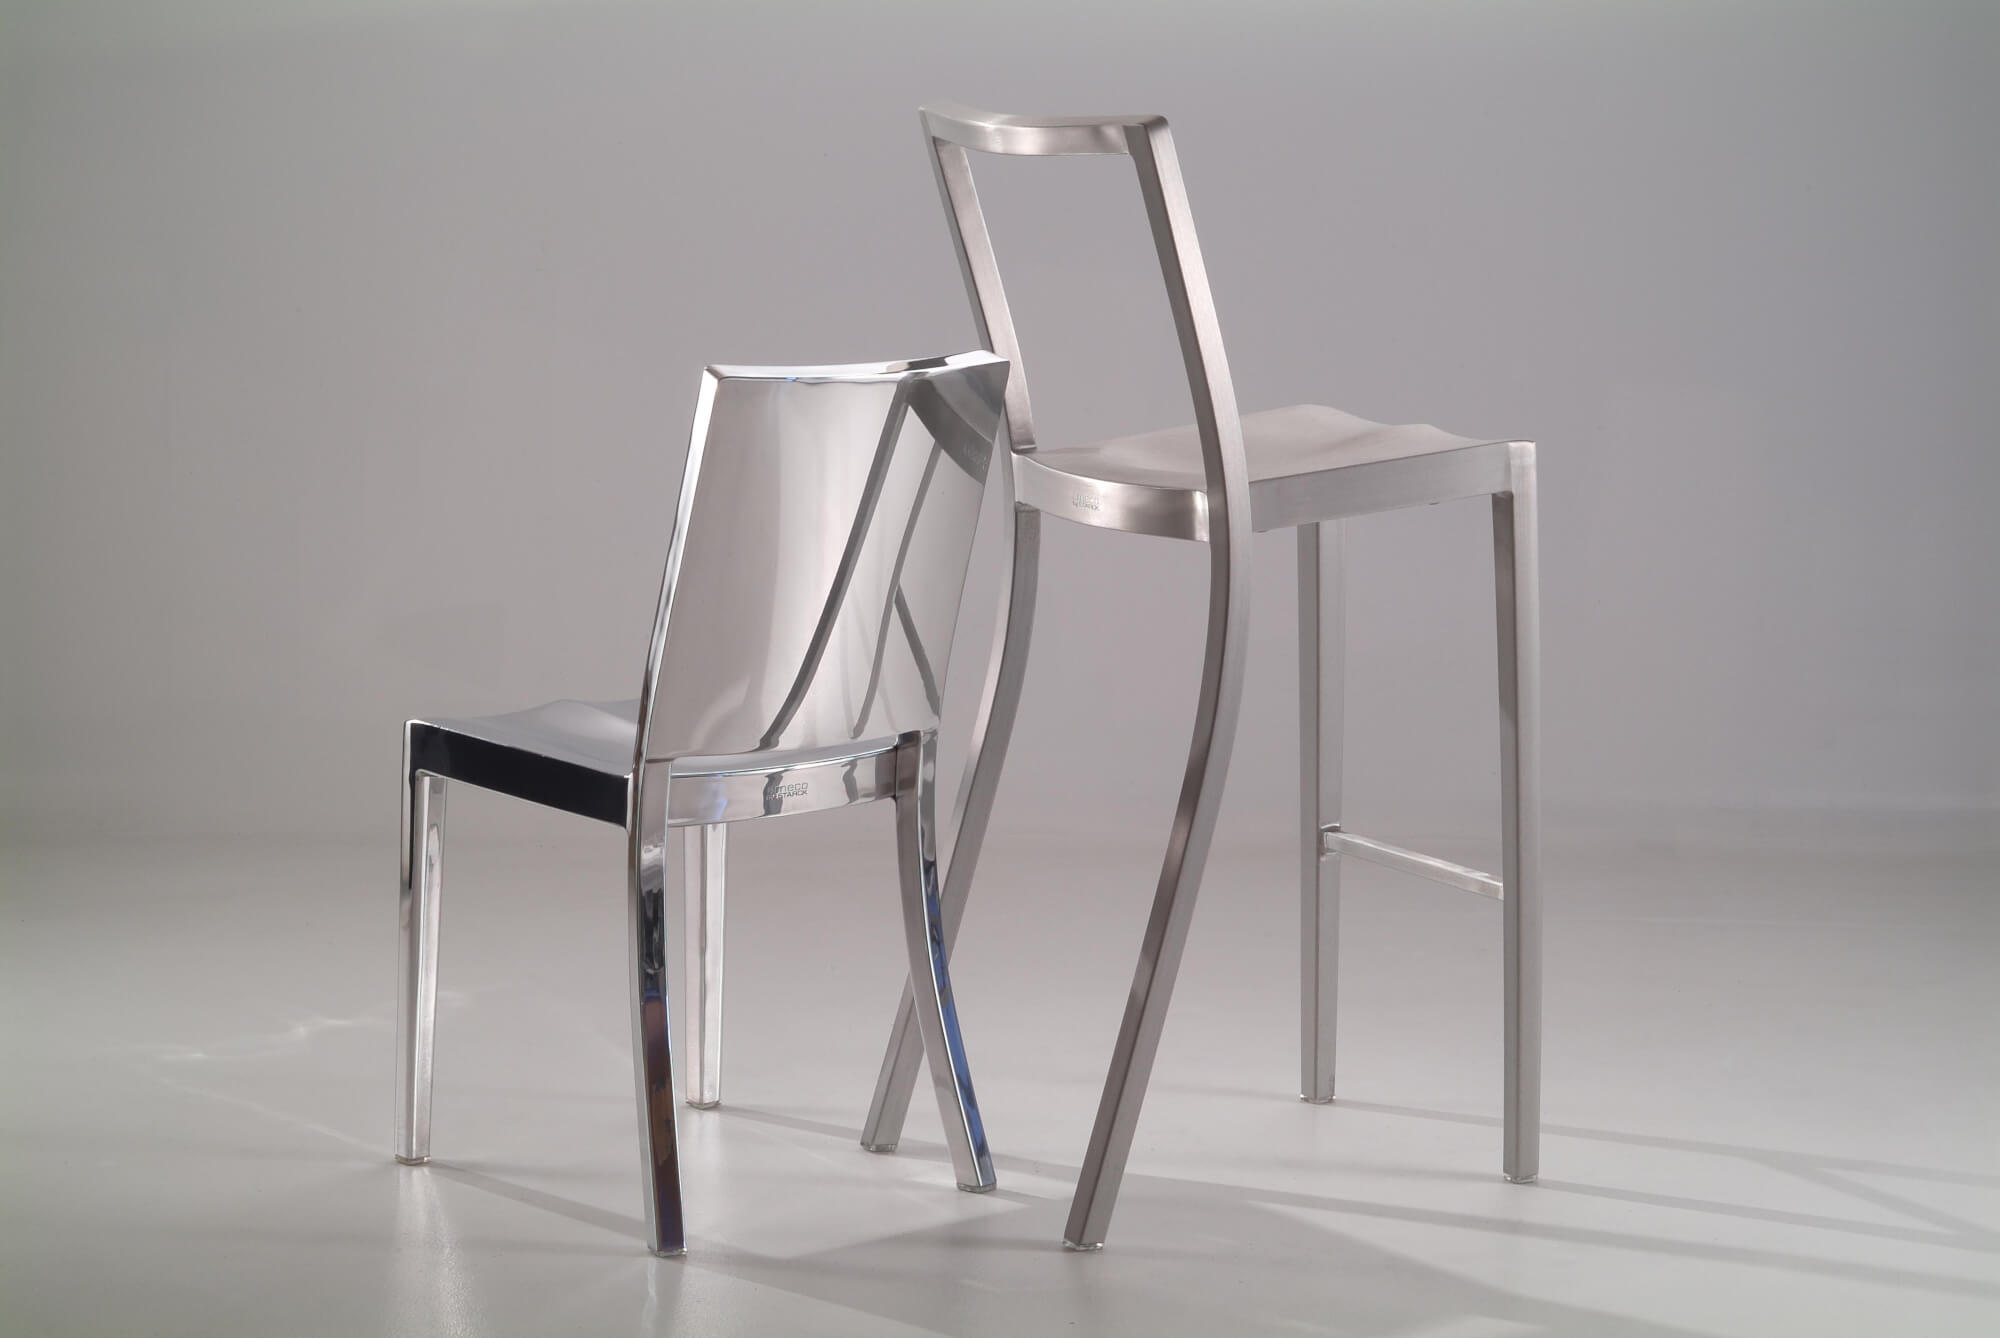 Philippe Starck and Emeco - A Long Lasting Collaboration